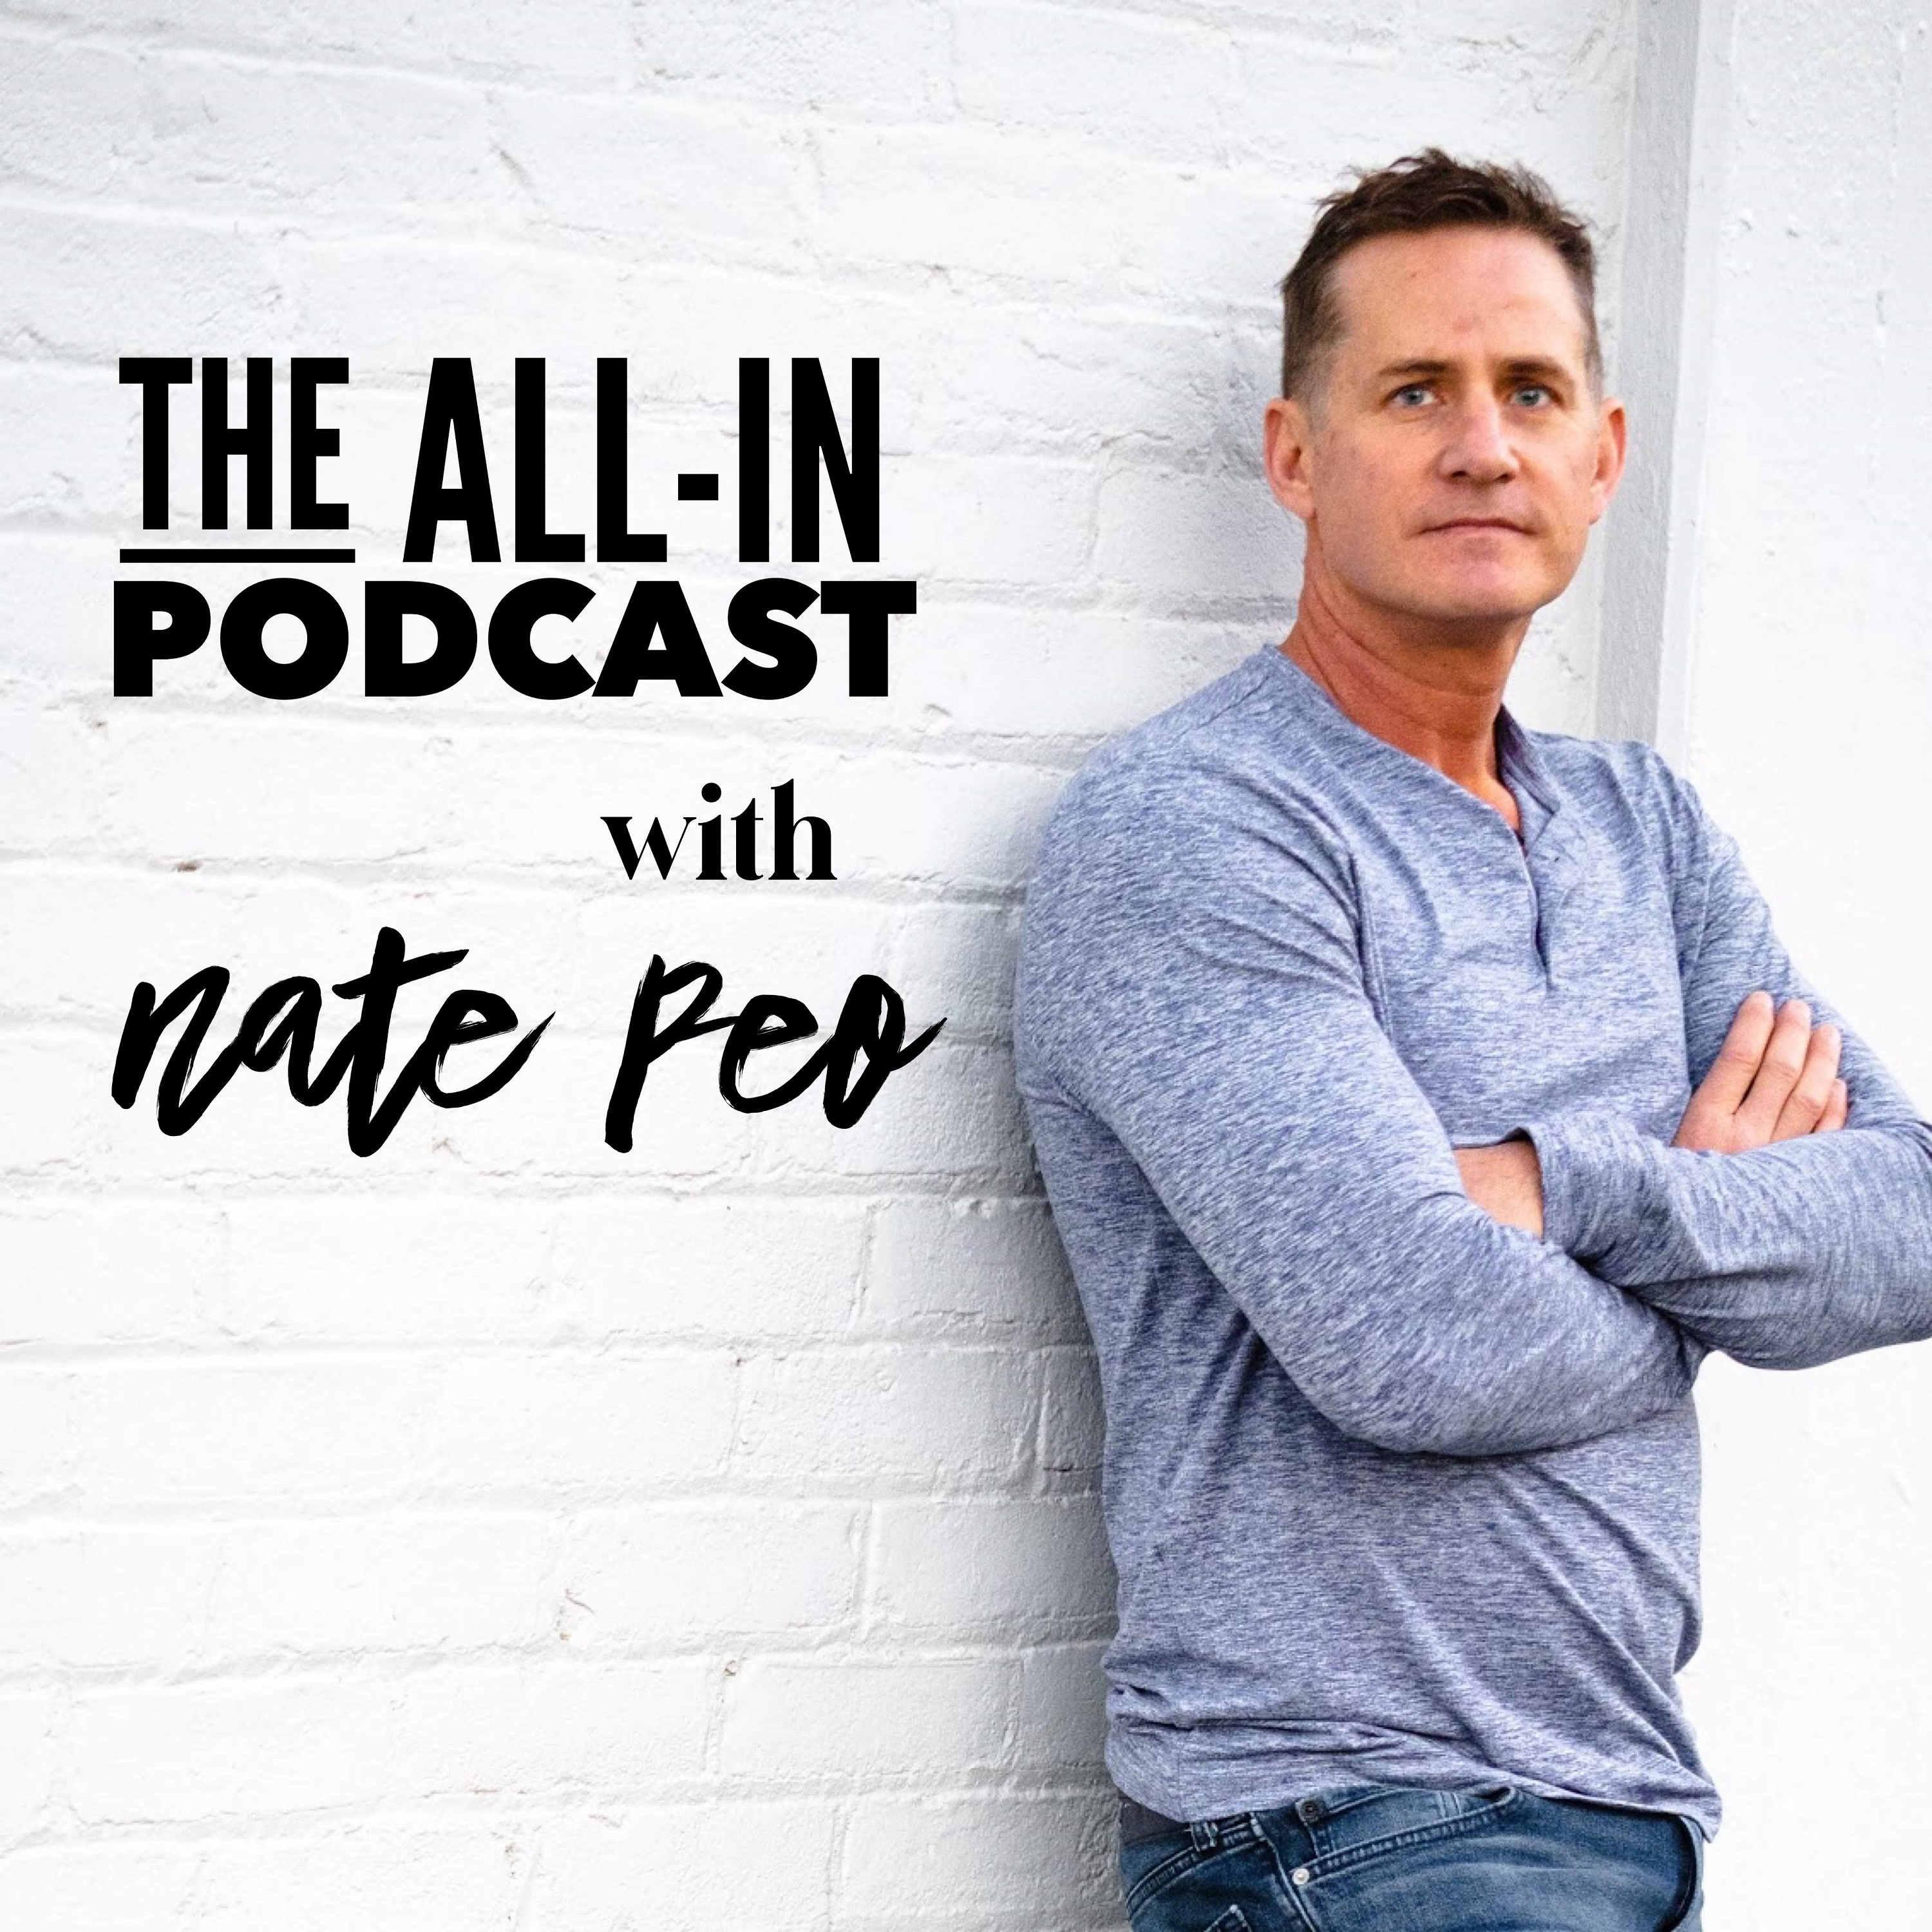 The All-In Podcast with Nate Peo show art